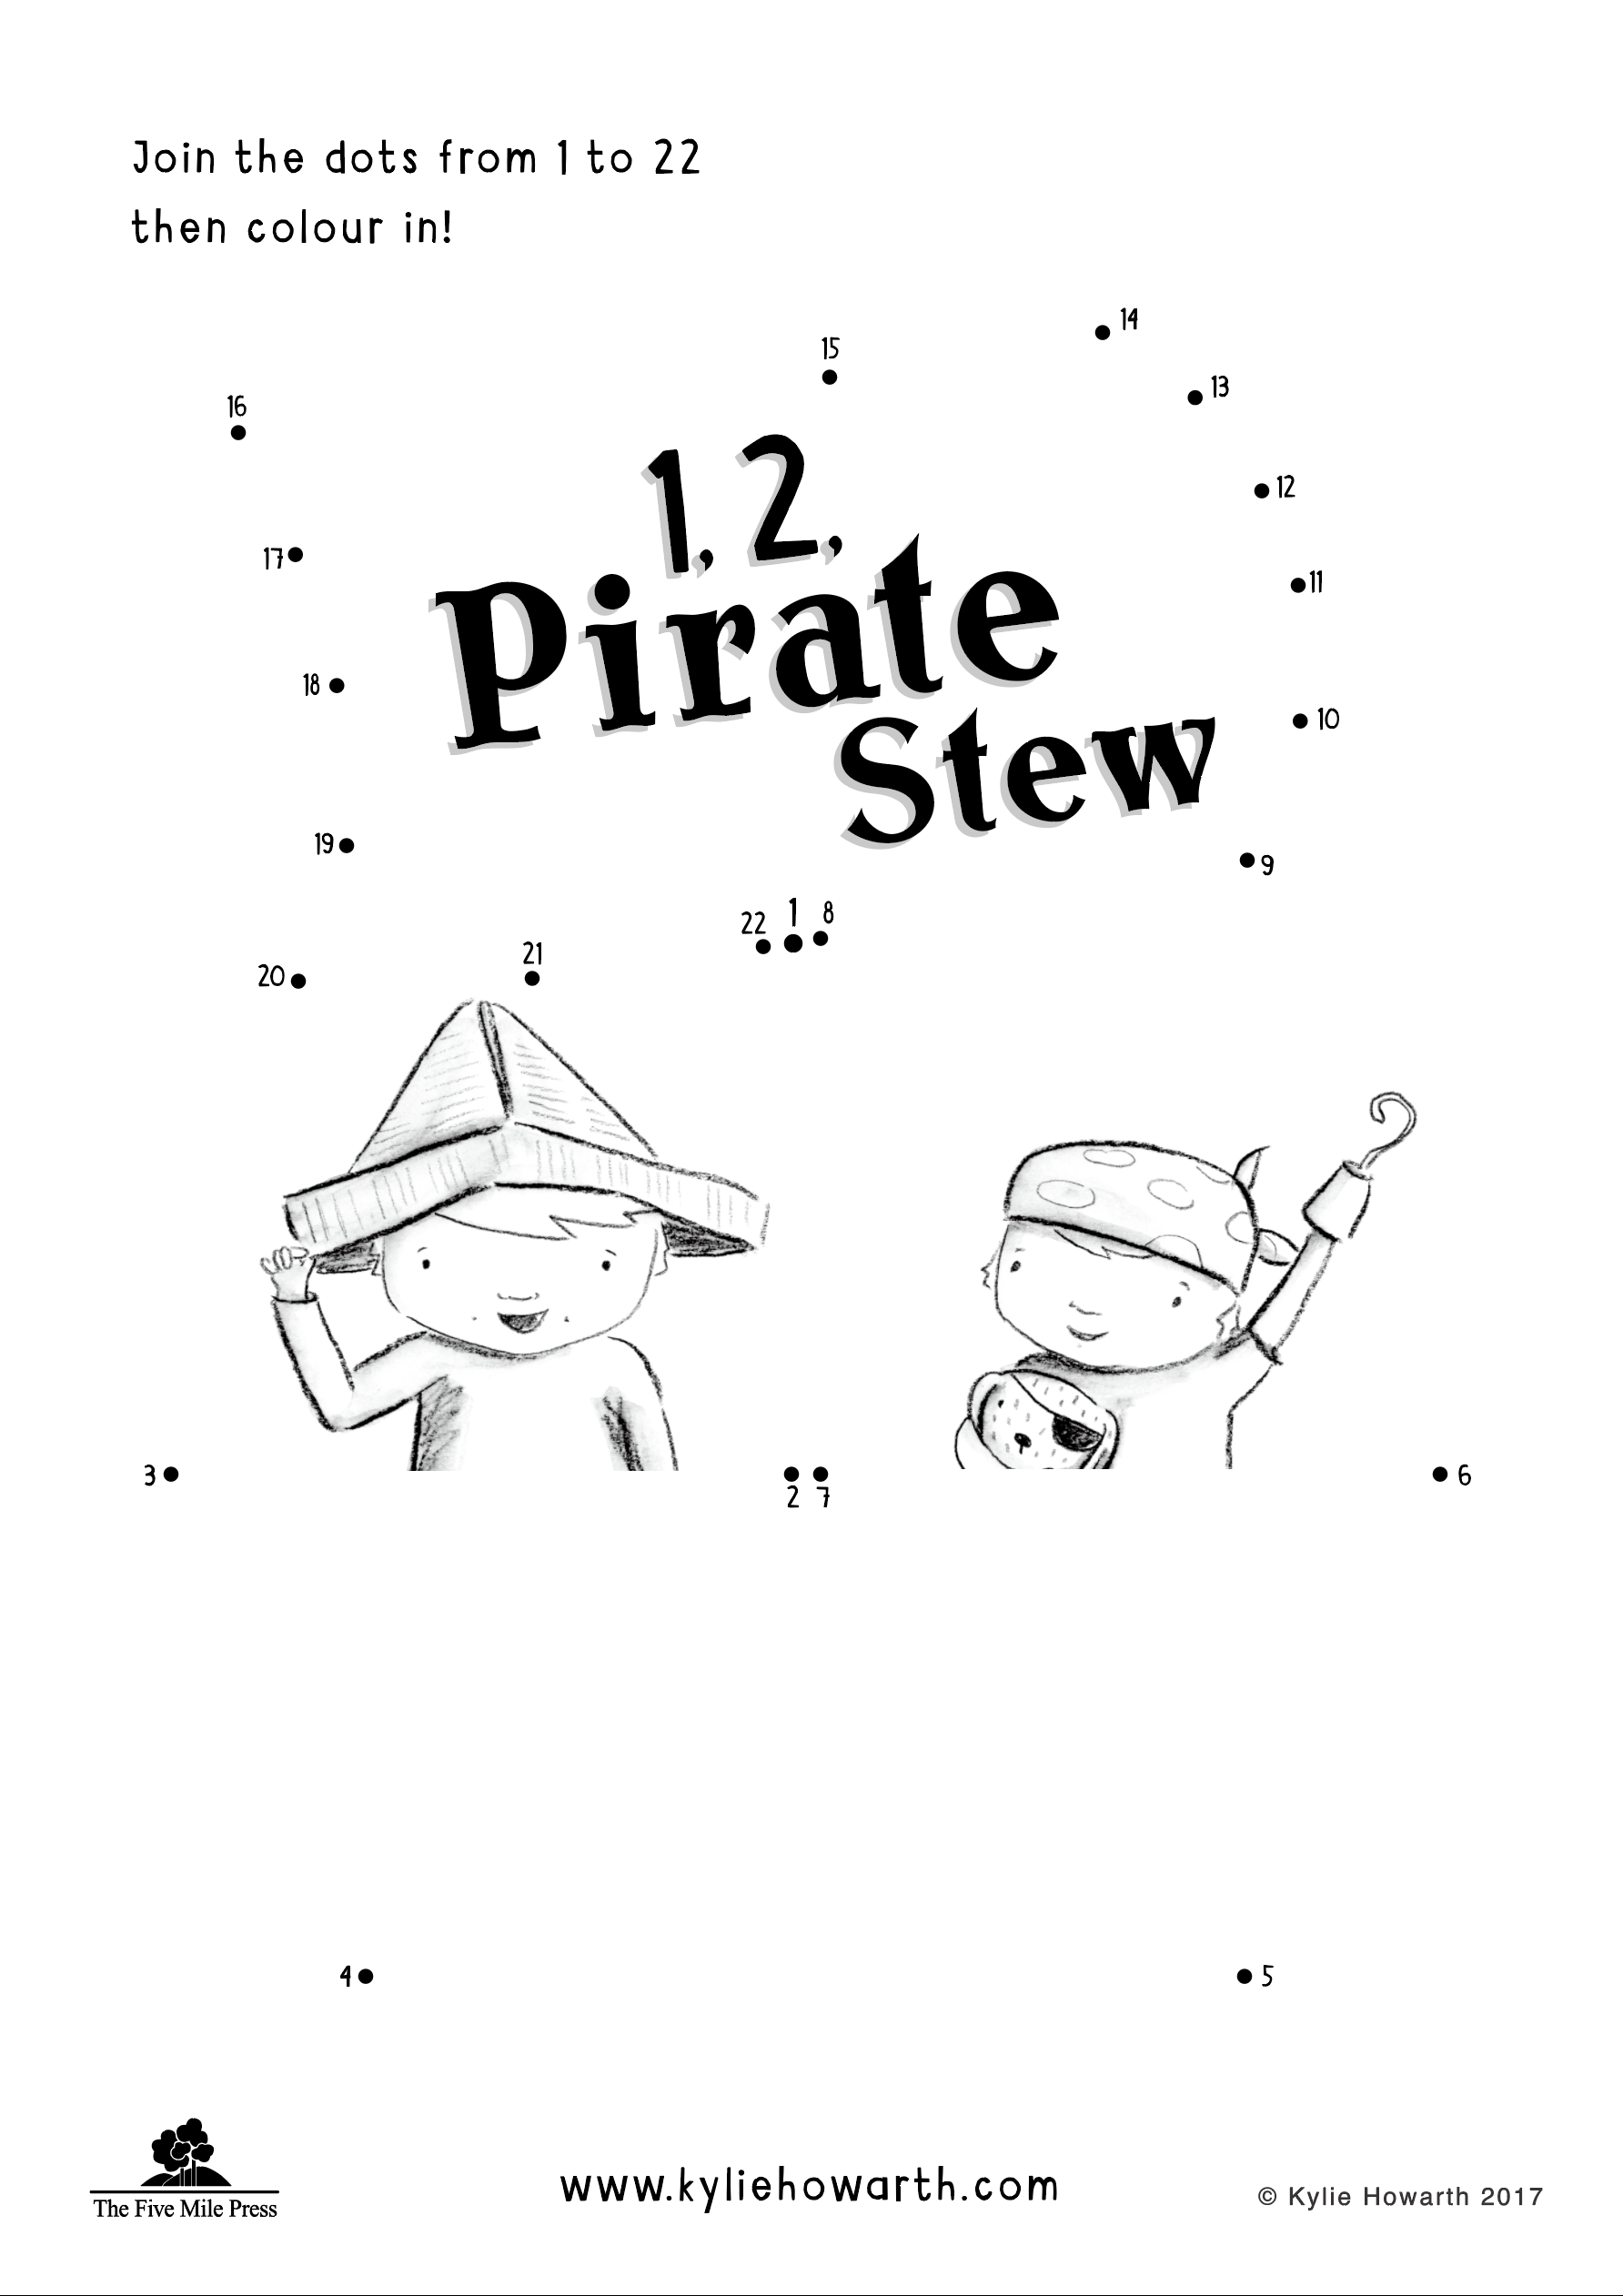 1, 2, Pirate Stew - Dot-to-dot sheet